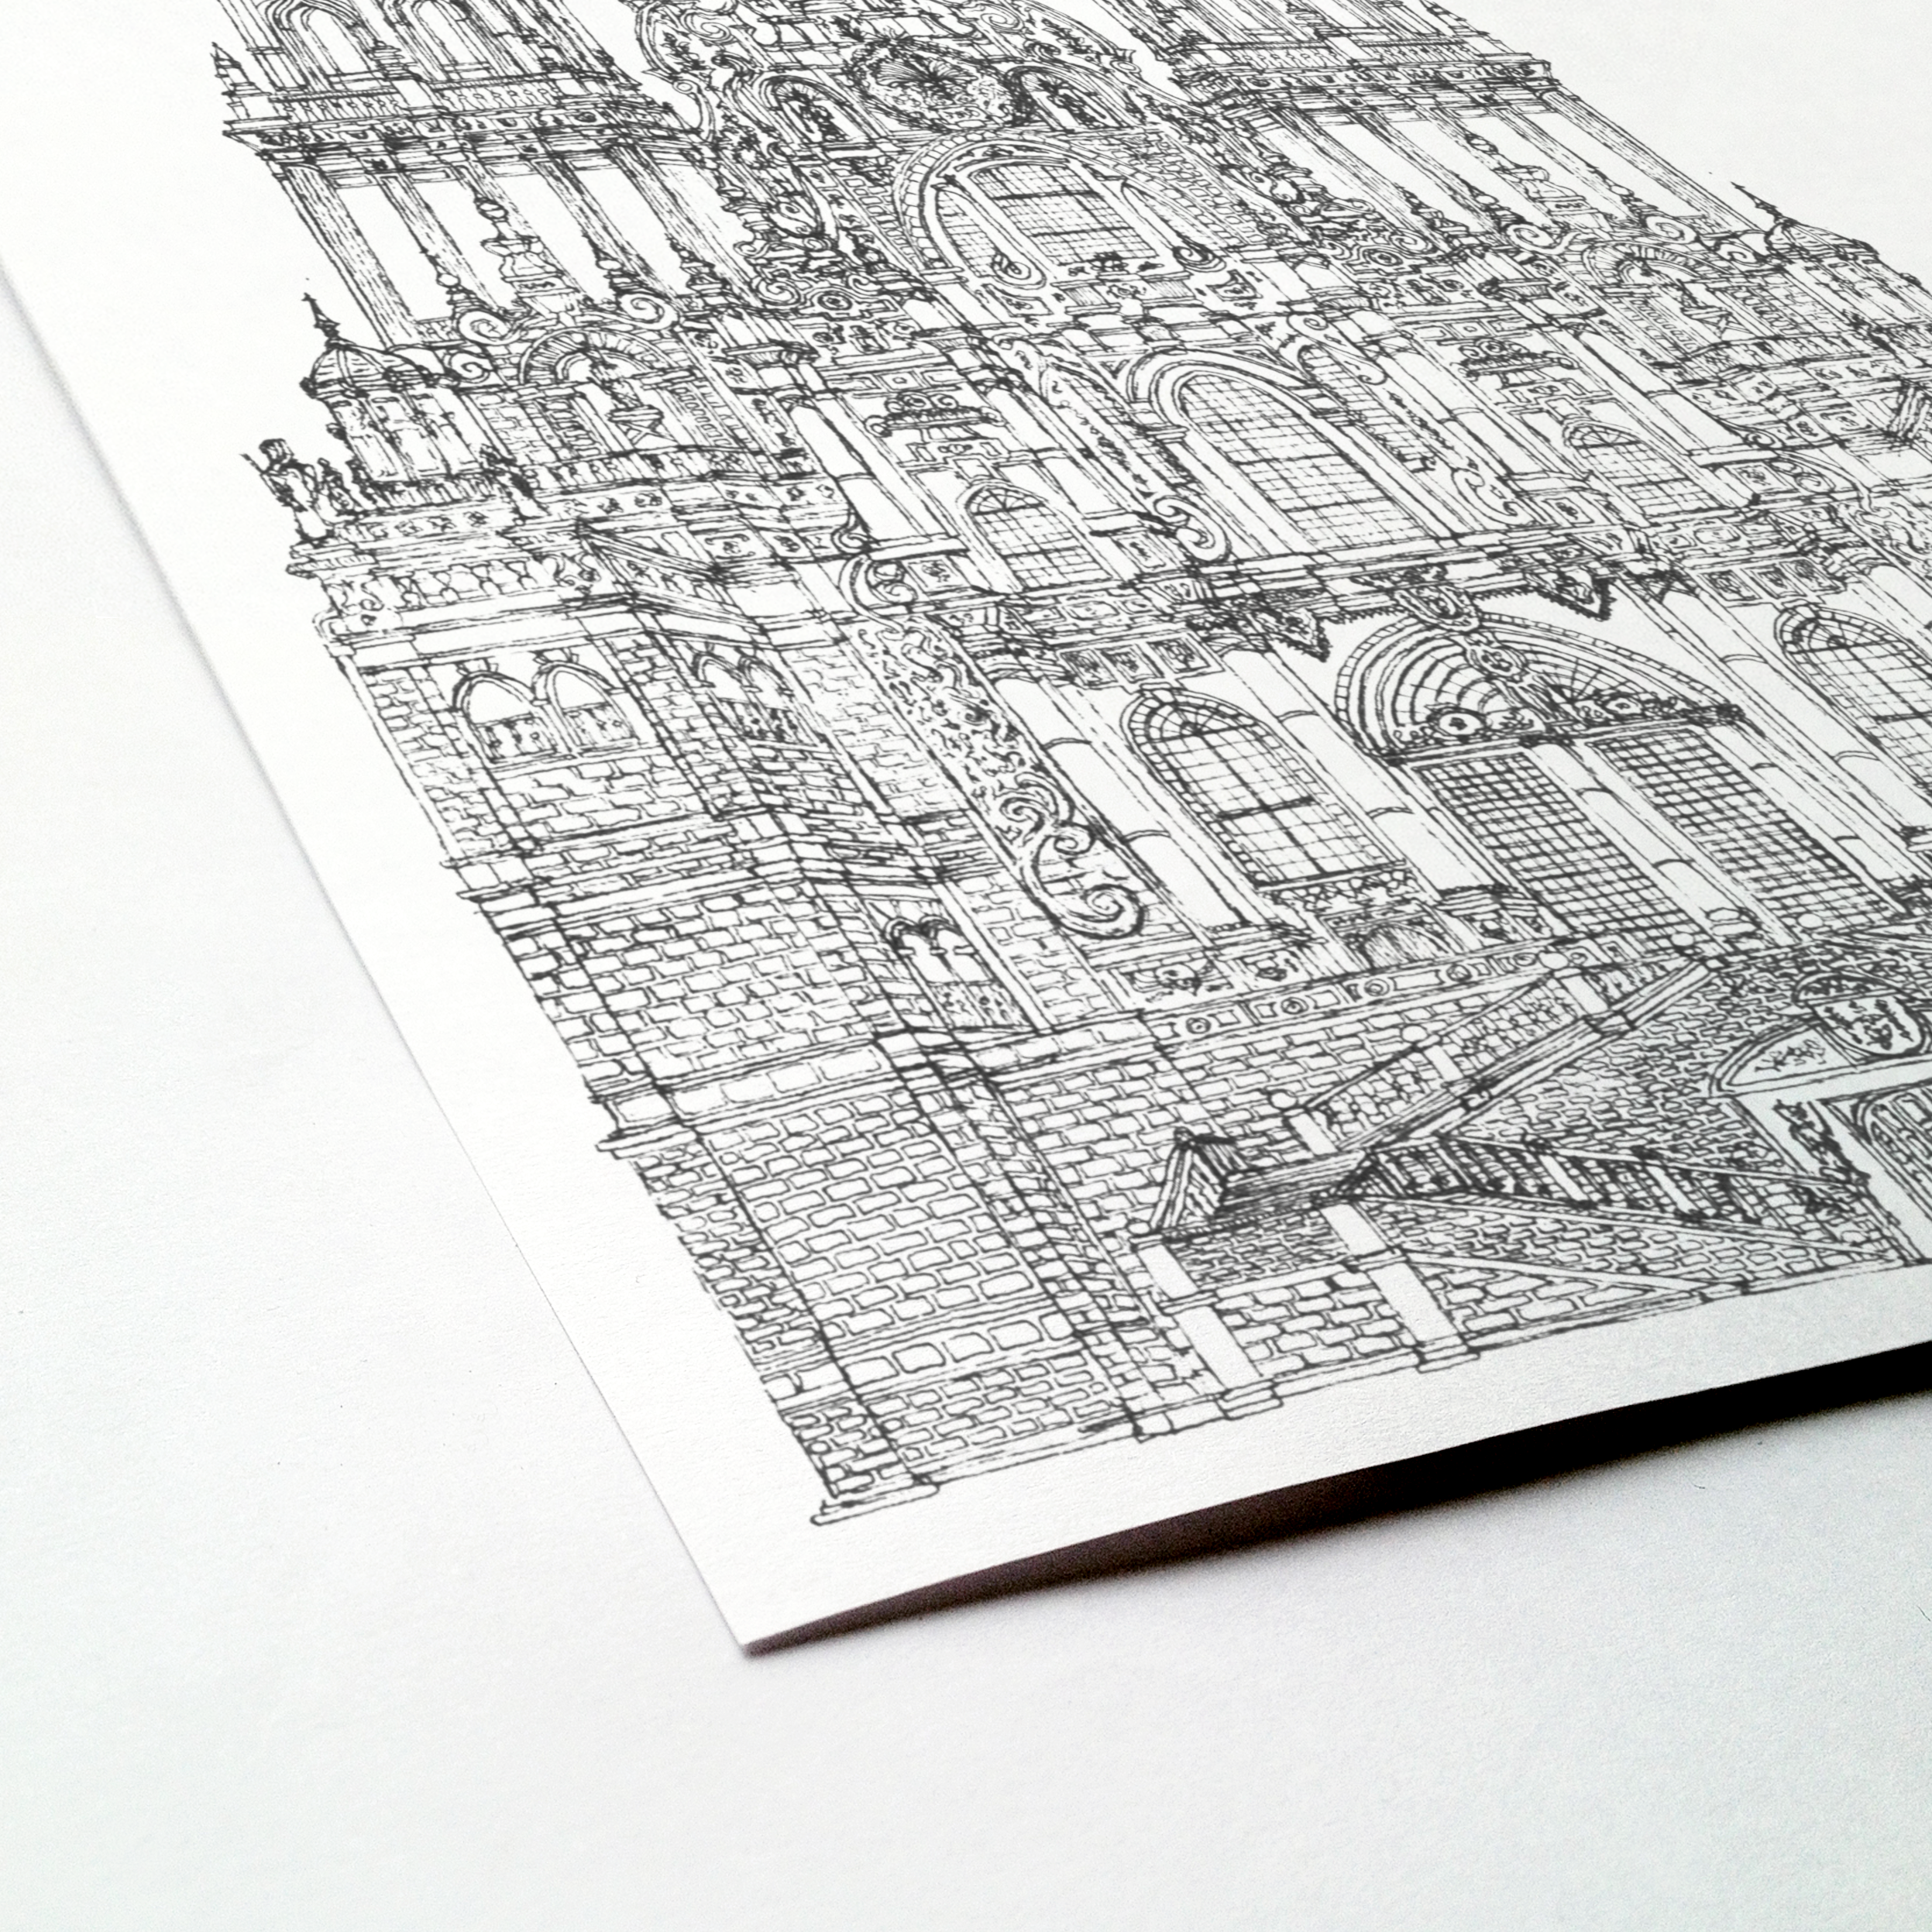 Cathedral, Santiago de Compostela, Spain illustration | ink & white